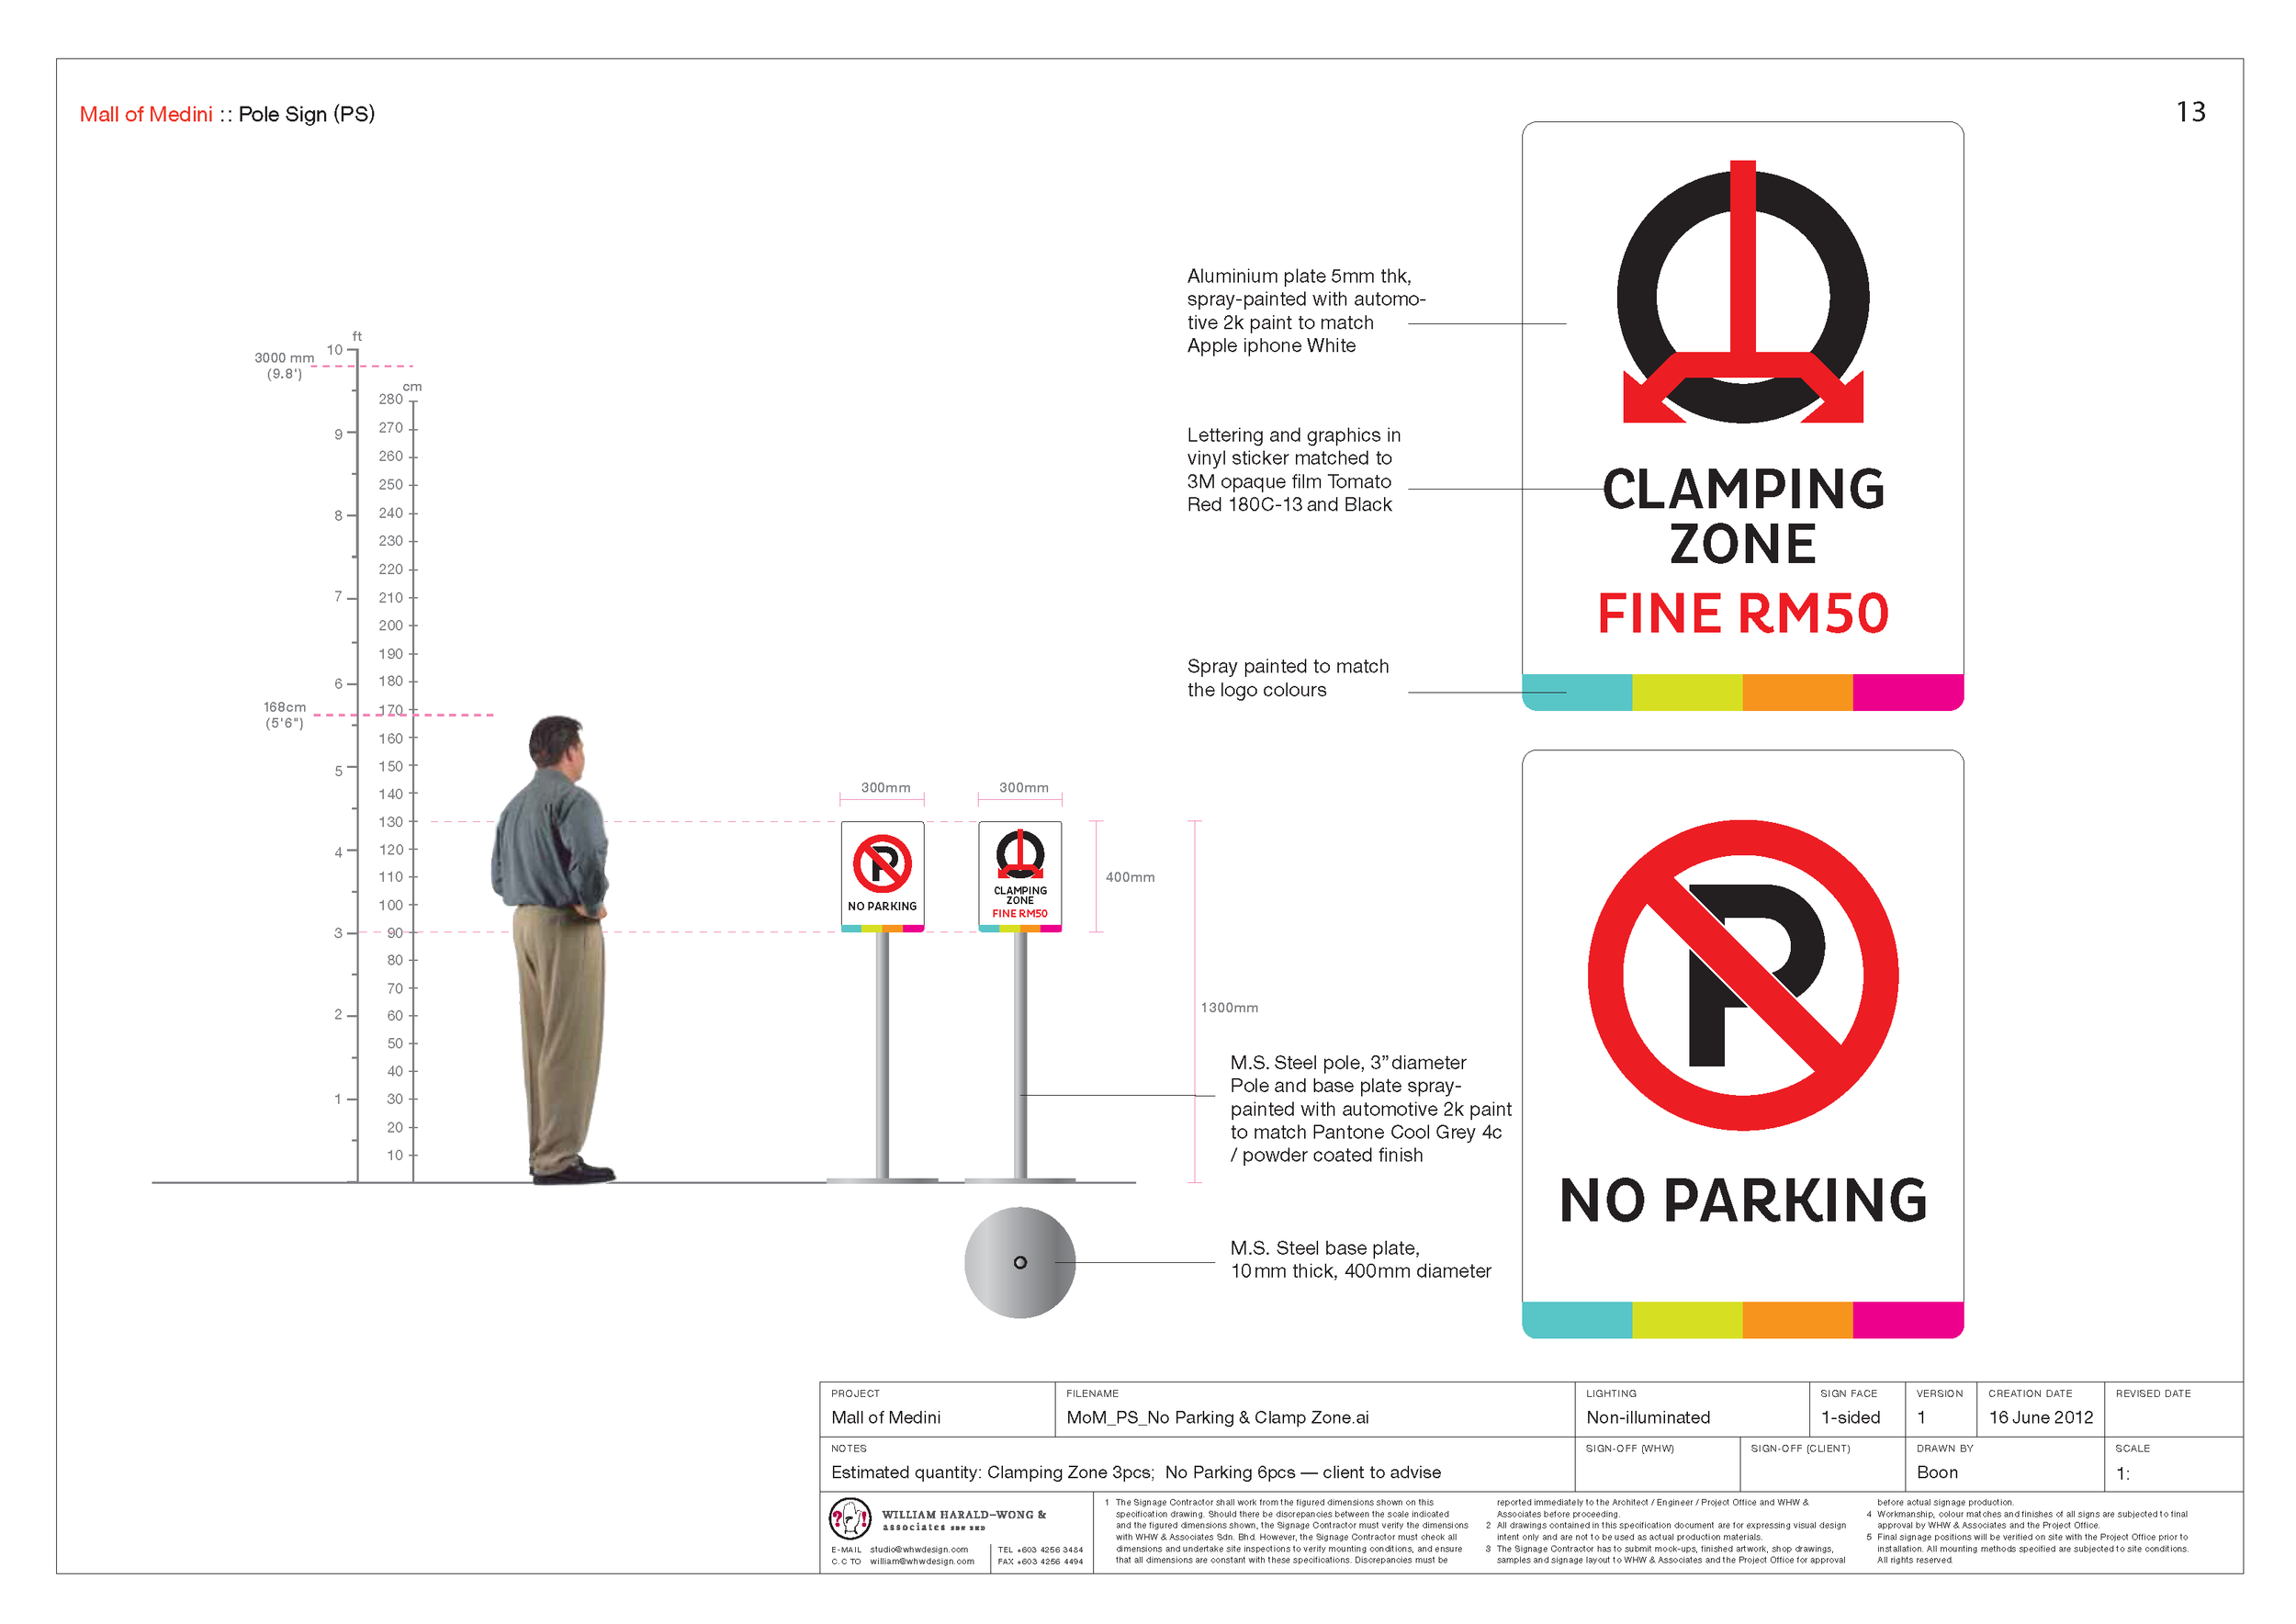 13_MoM_SP_No Parking & Clamp Zone.png